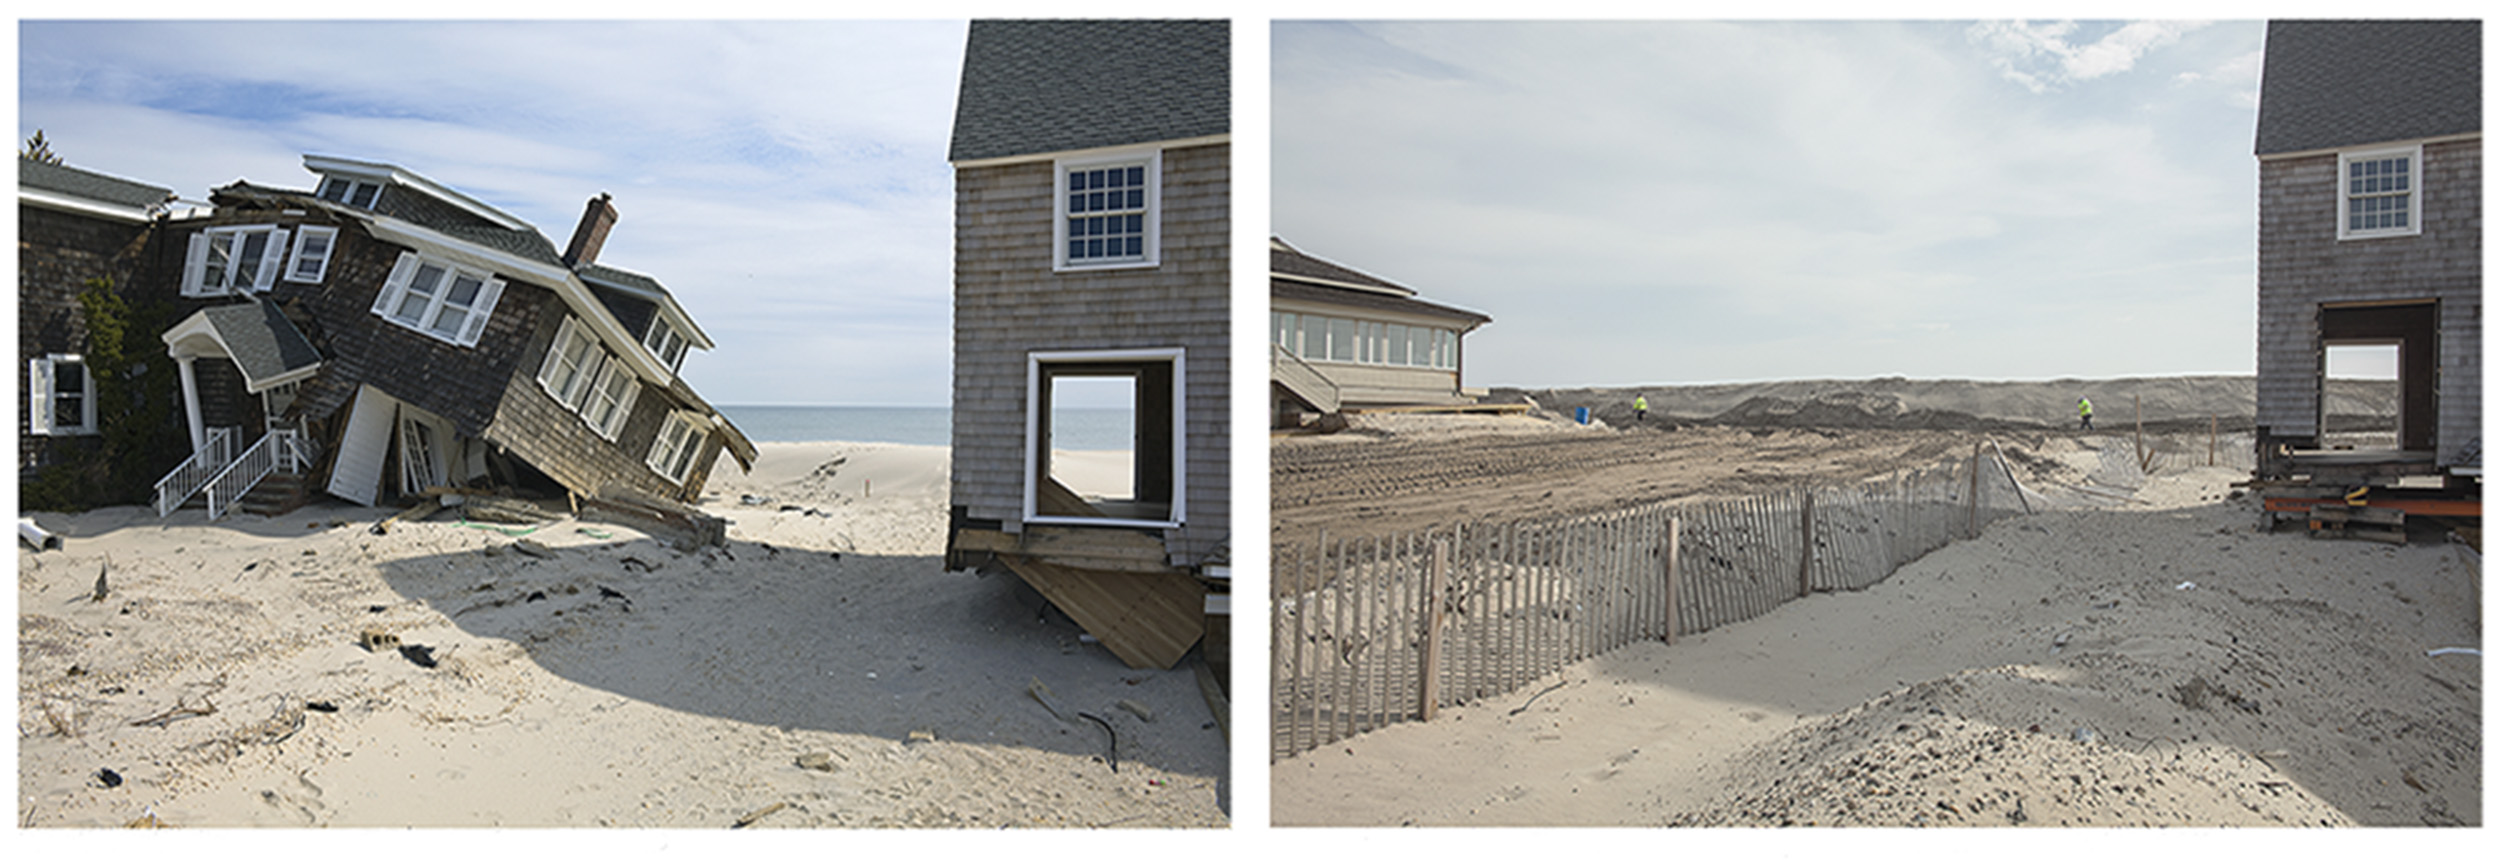 Beach Houses 959 East Ave Mantoloking NJ Diptych website copy